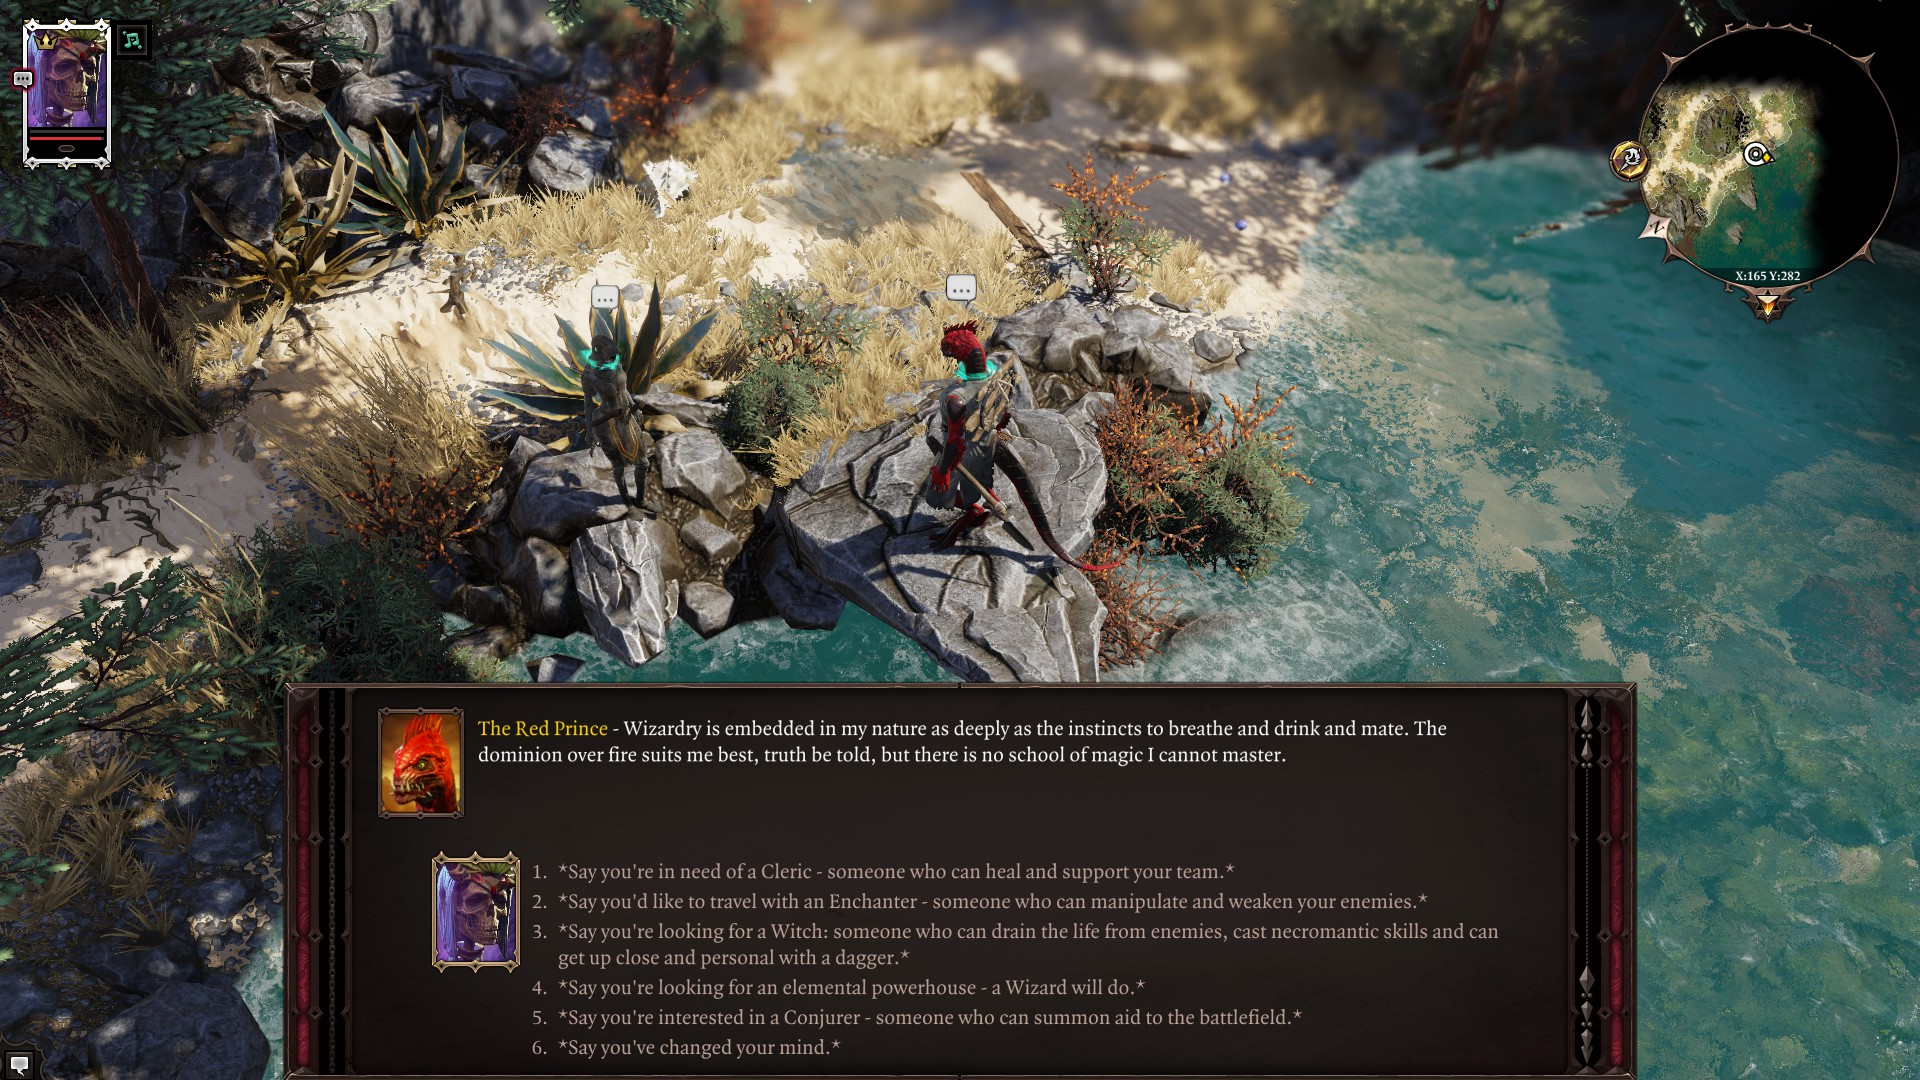 Divinity: Original Sin 2 - Character Creation and Beginner's